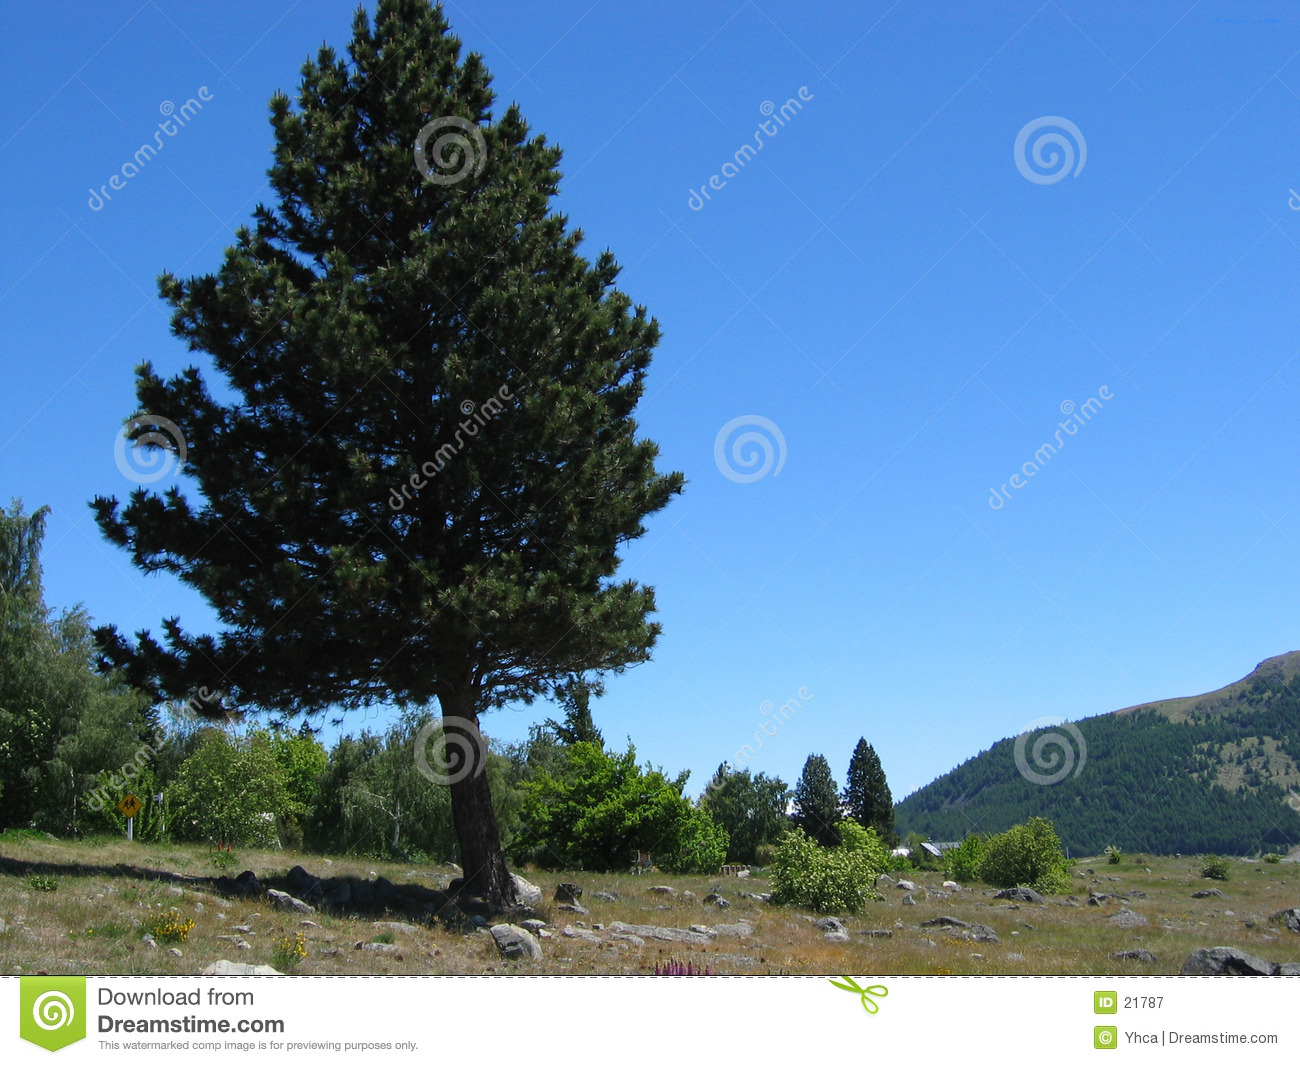 Tree in scenic countryside